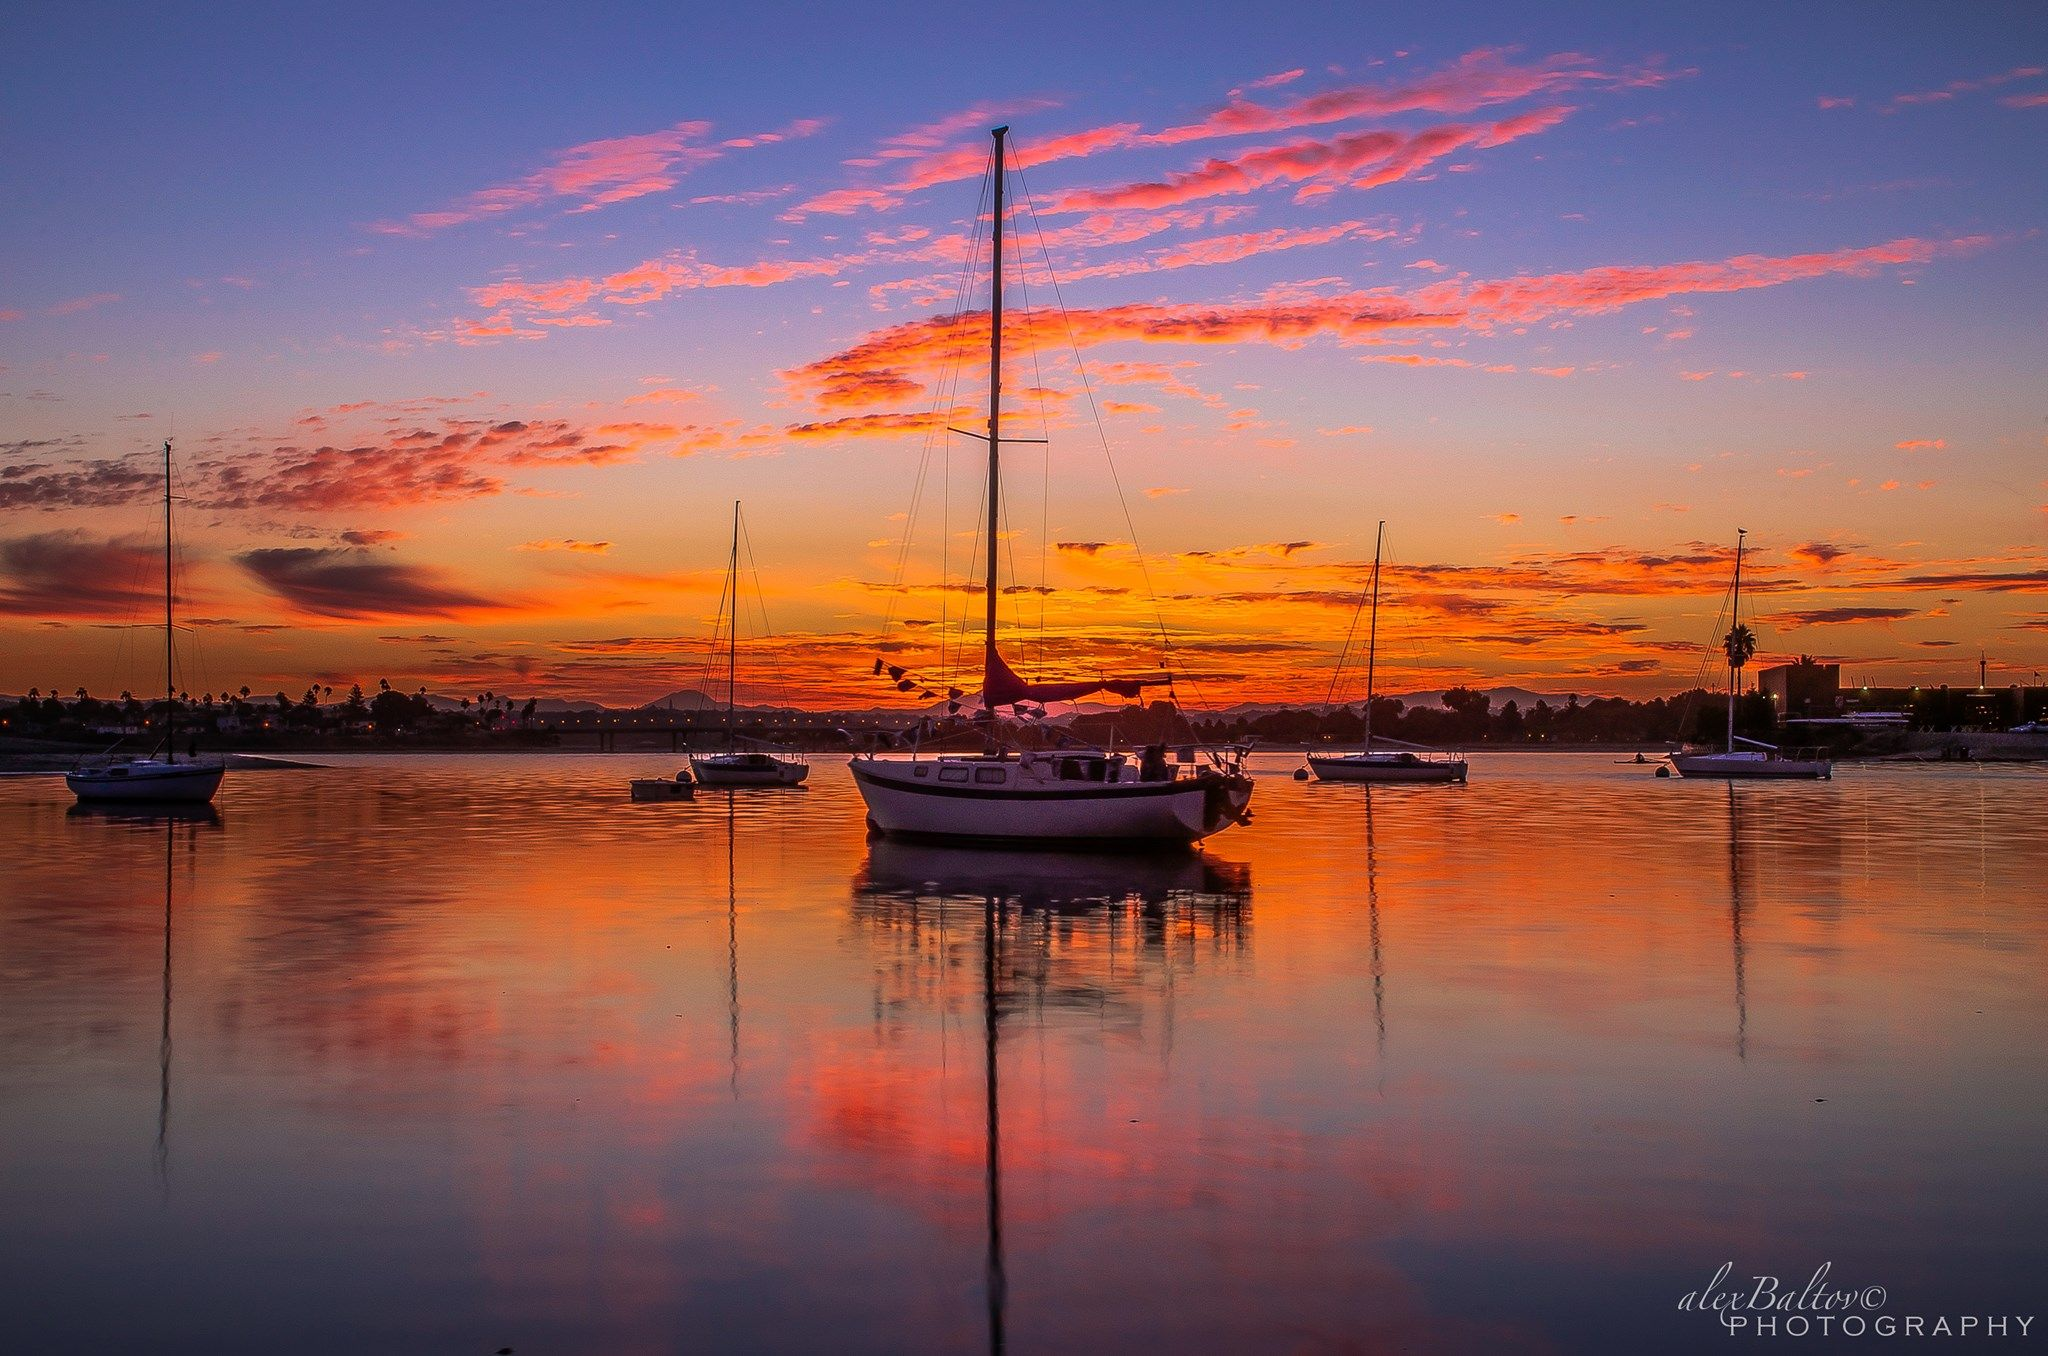 The recent sunrises here over the past week here in San Diego have been pretty intense... Pretty on the Bay...  Alex Baltov Photography